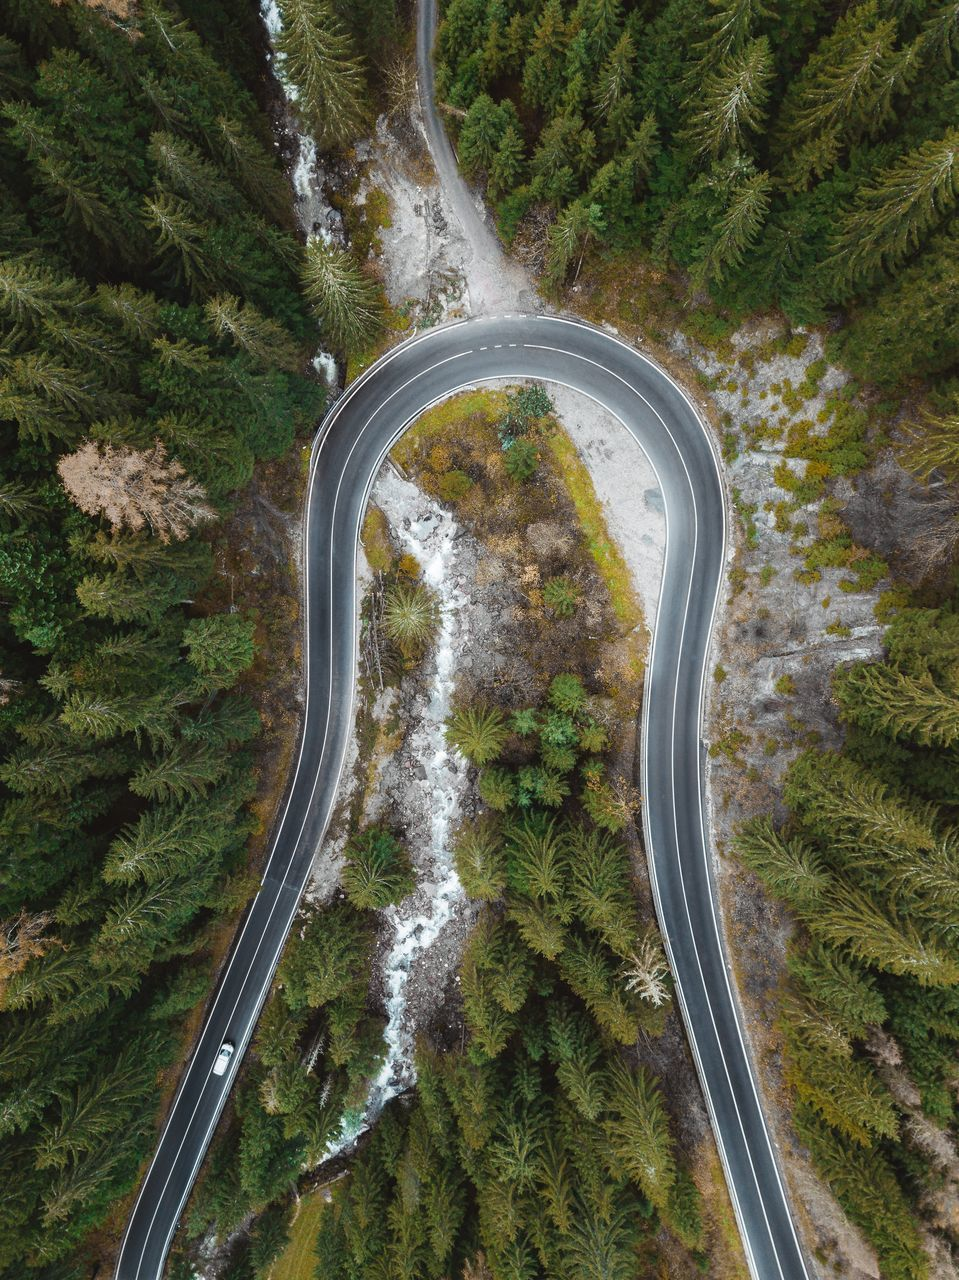 transportation, road, plant, tree, high angle view, curve, no people, scenics - nature, nature, mountain road, aerial view, mountain, mode of transportation, beauty in nature, non-urban scene, tranquility, motor vehicle, day, winding road, car, outdoors, above, multiple lane highway